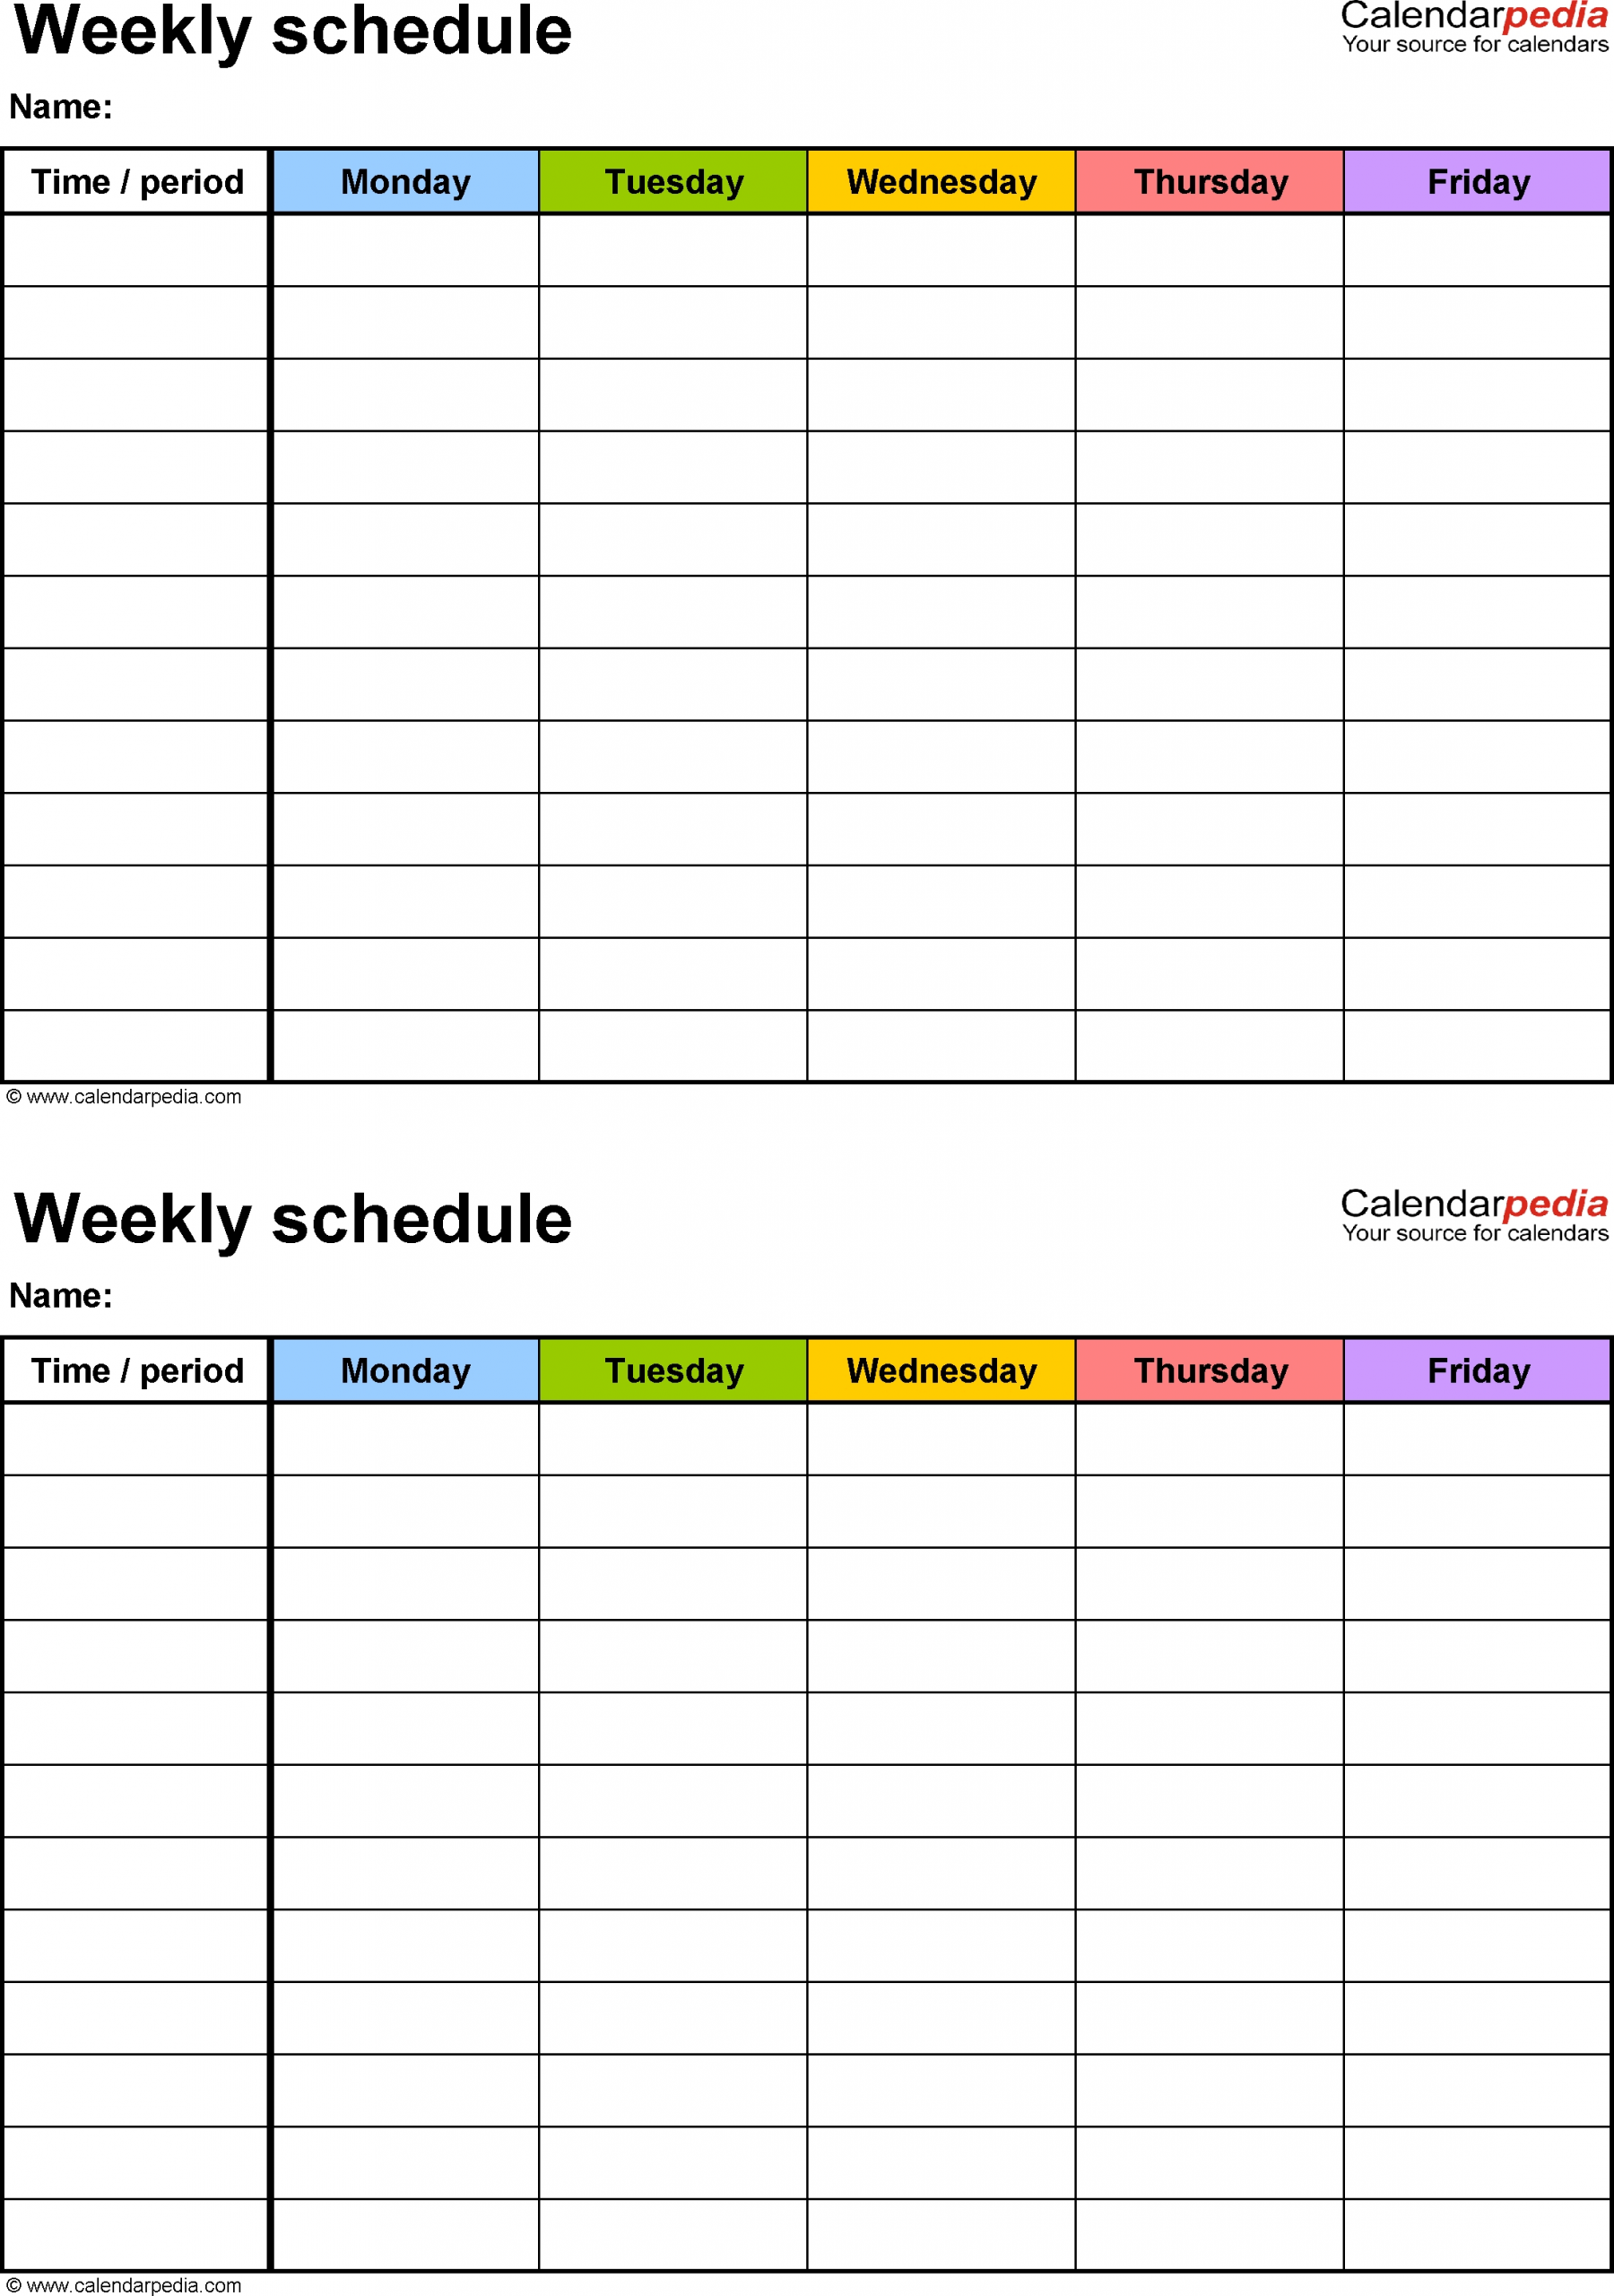 Printable Weekly Schedule Monday Thru Friday - Calendar Mon Thru Fri Weekly Planner Printable